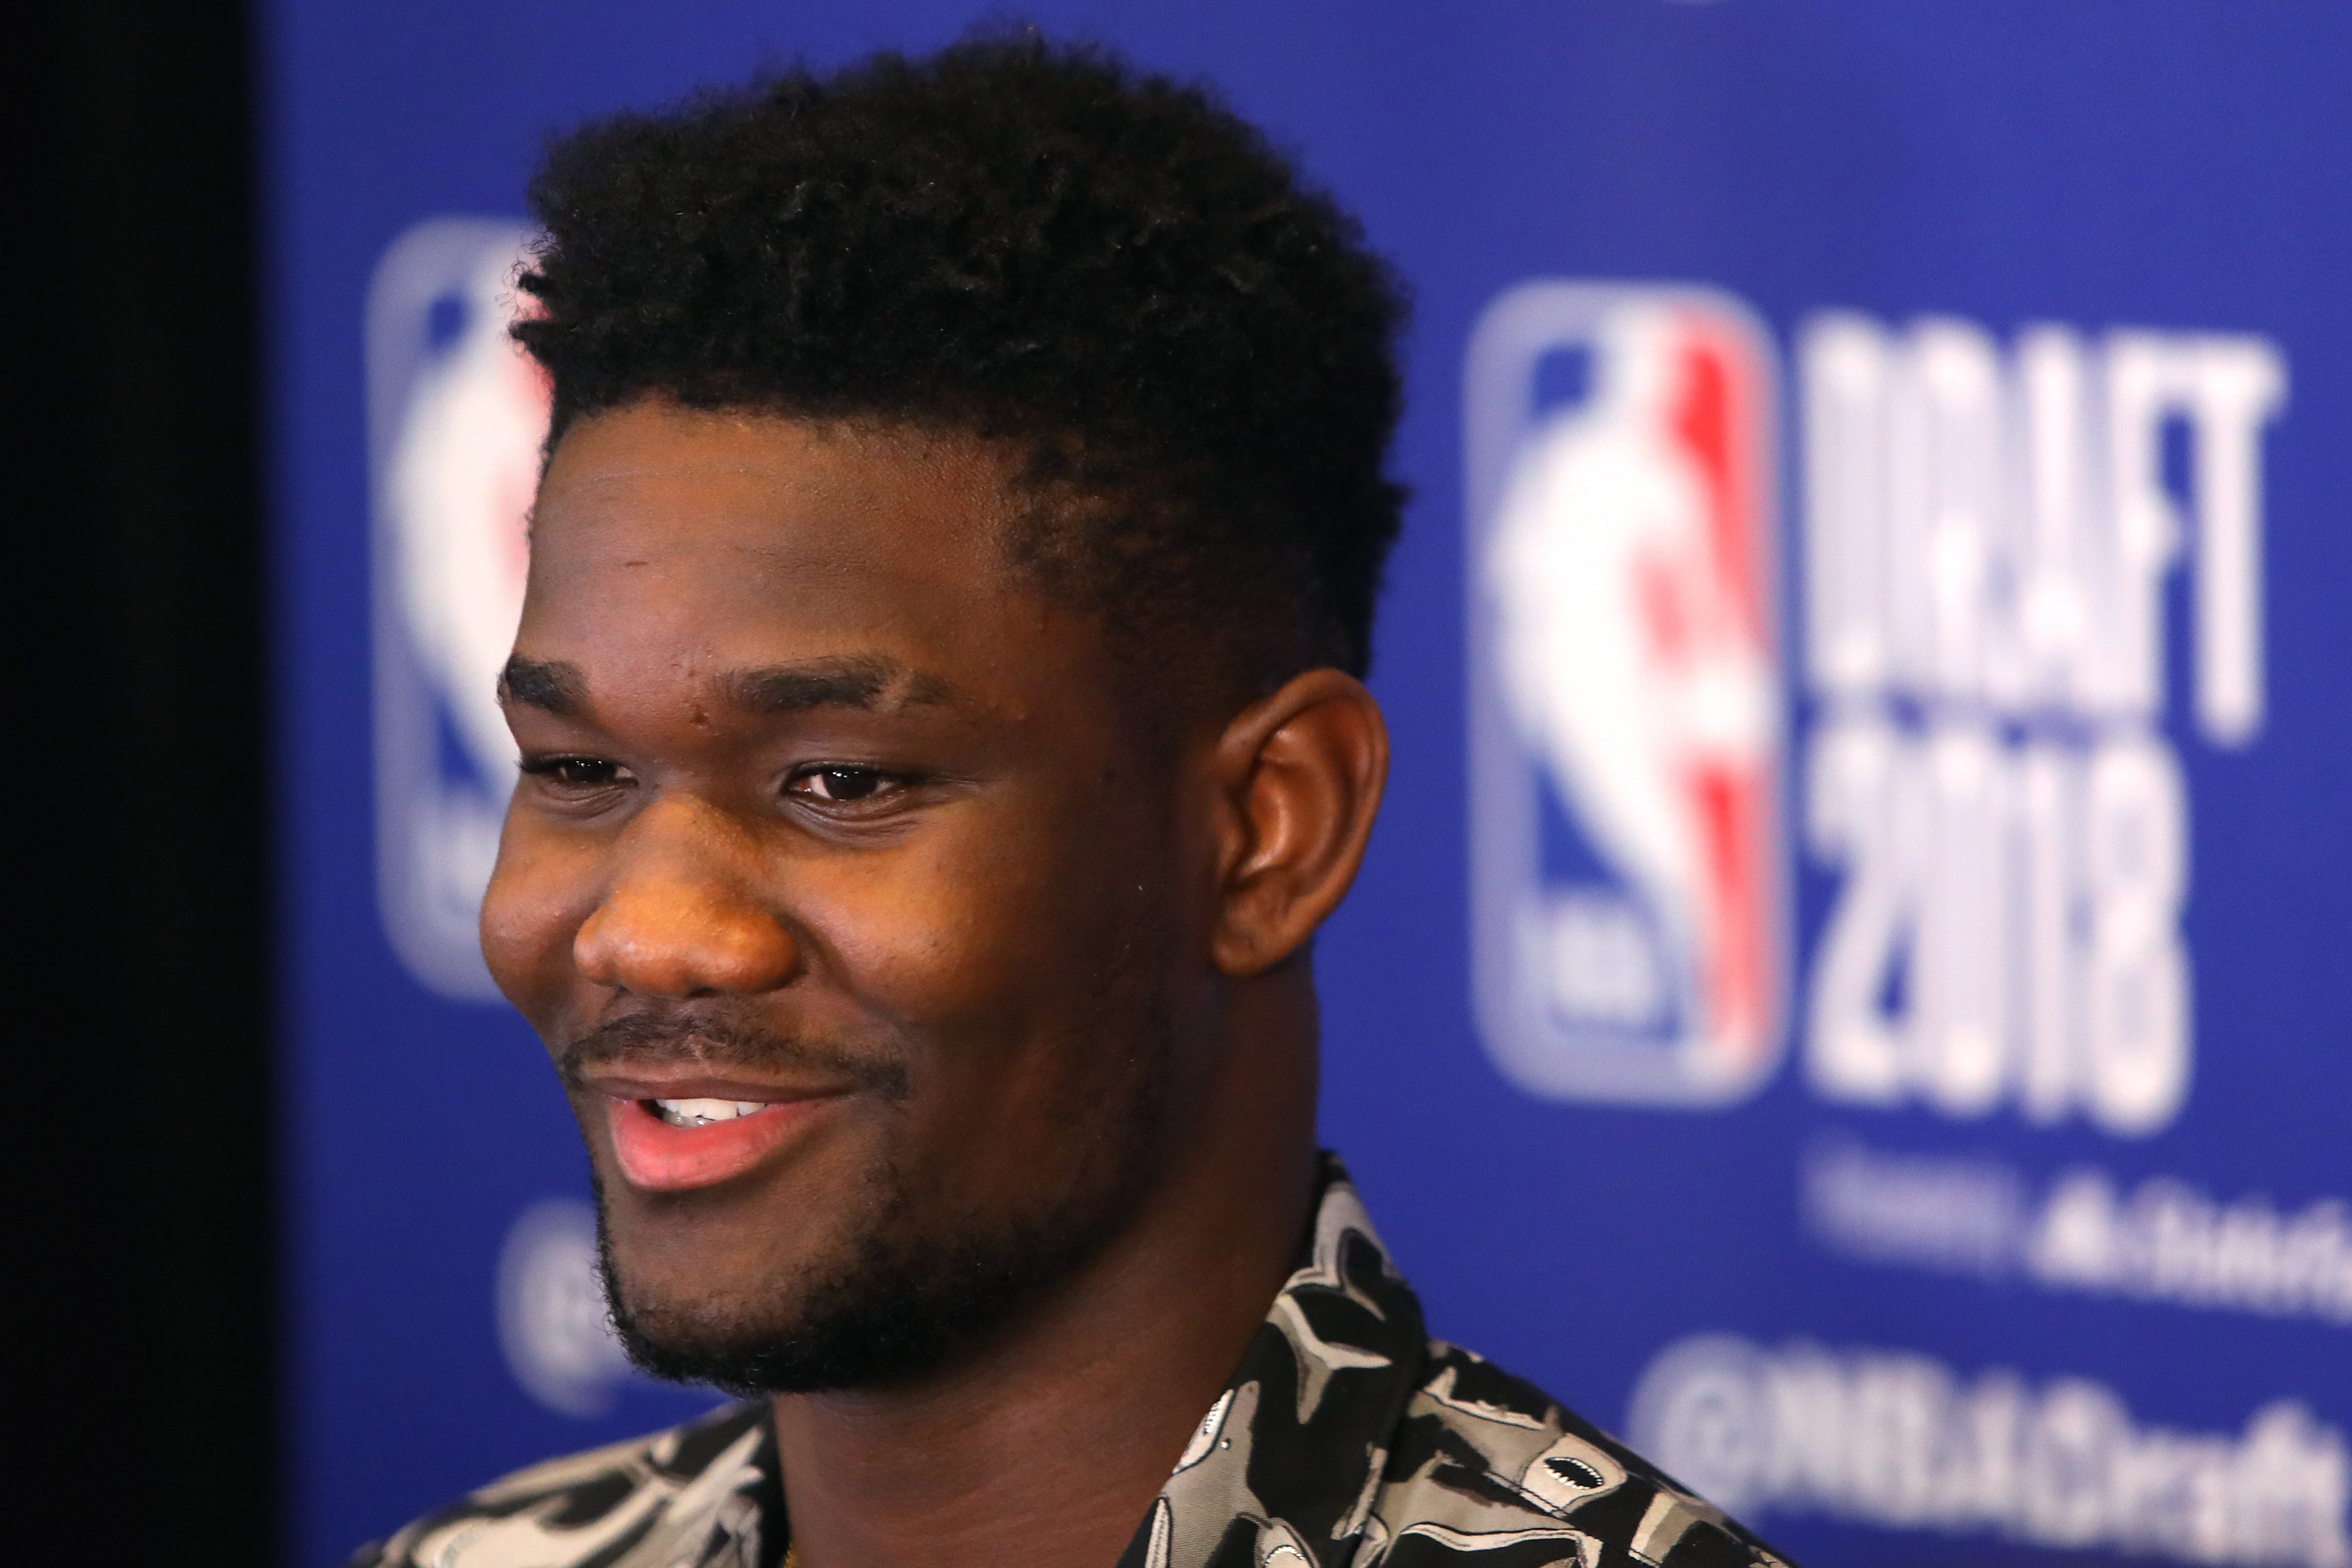 Deandre Ayton played a lot of Fortnite before NBA draft